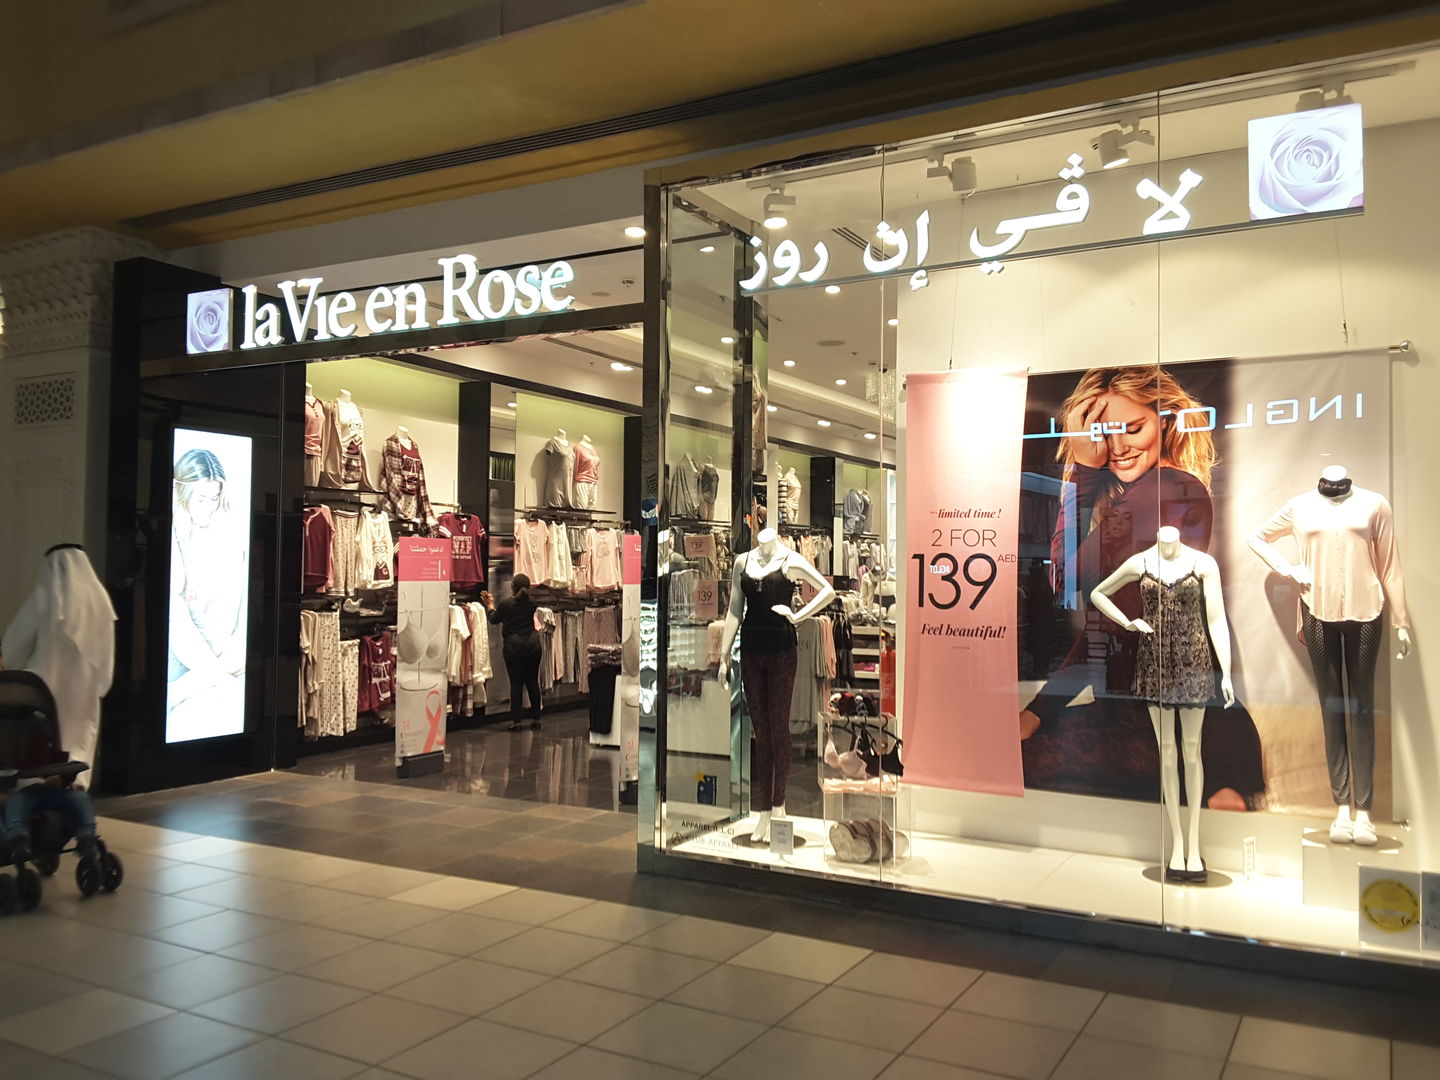 HiDubai-business-la-vie-en-rose-shopping-apparel-ibn-batuta-jebel-ali-1-dubai-2